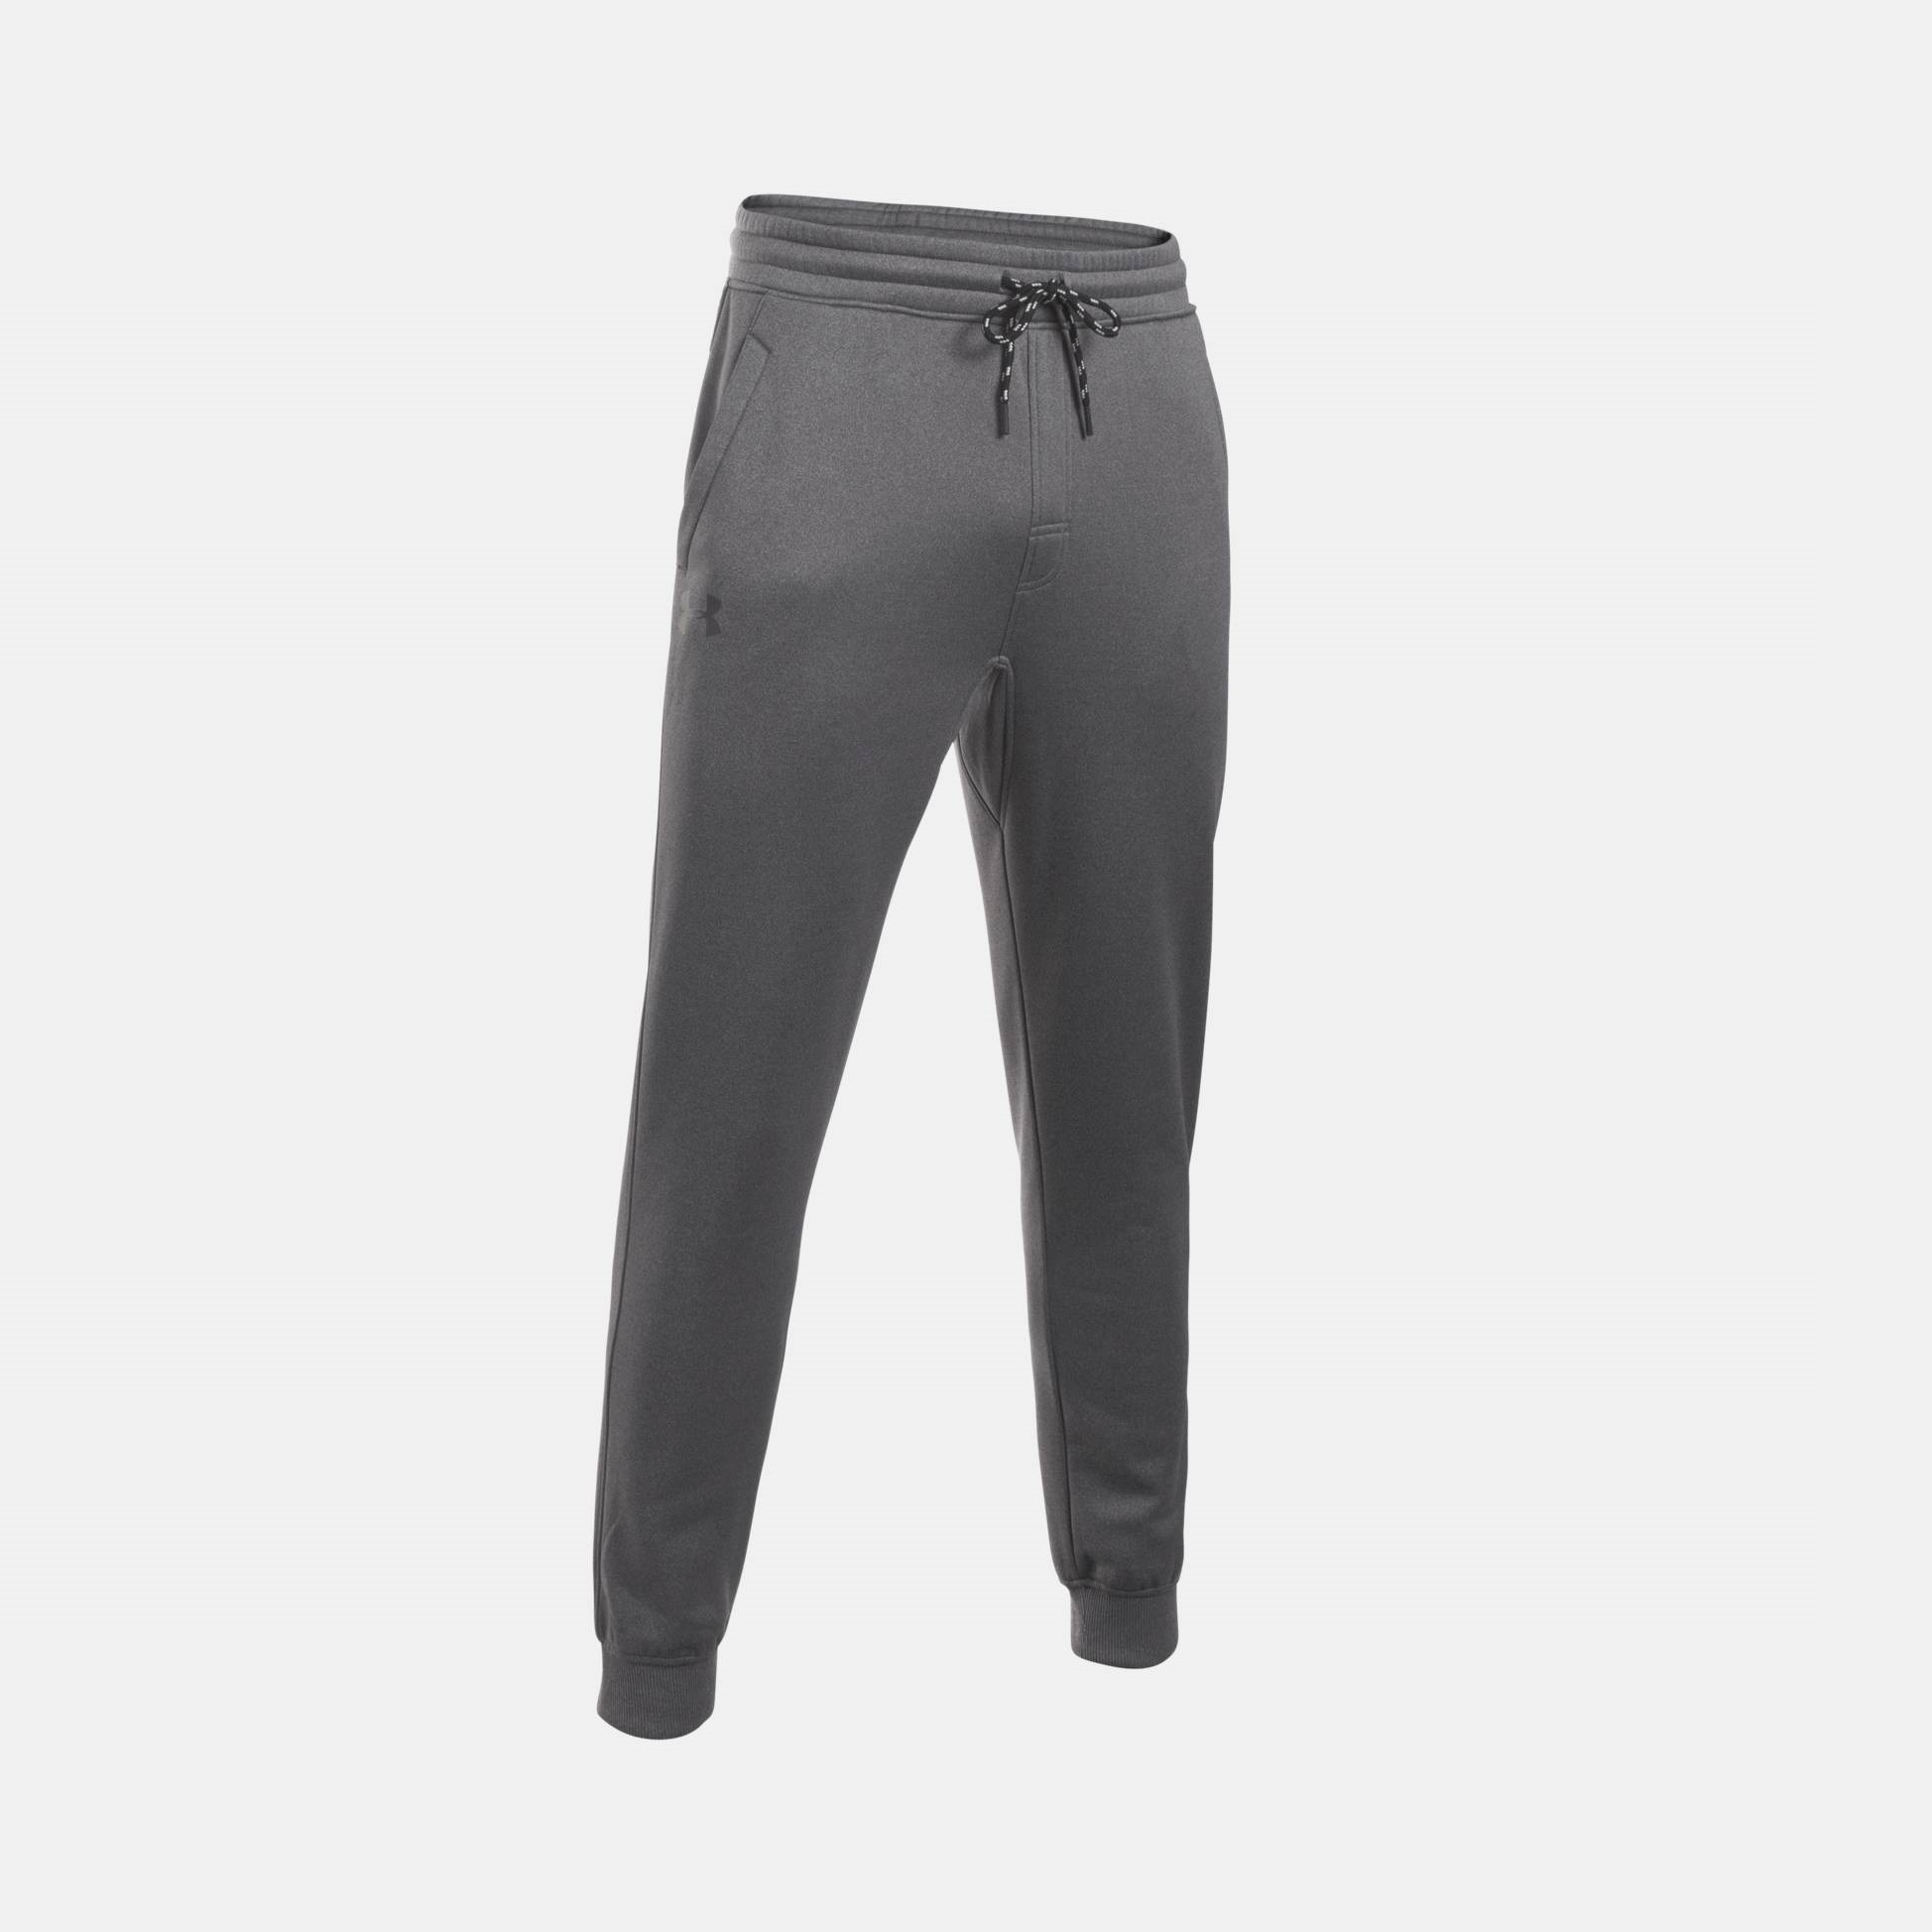 7ca9ef2f7 under armour joggers cheap > OFF78% The Largest Catalog Discounts